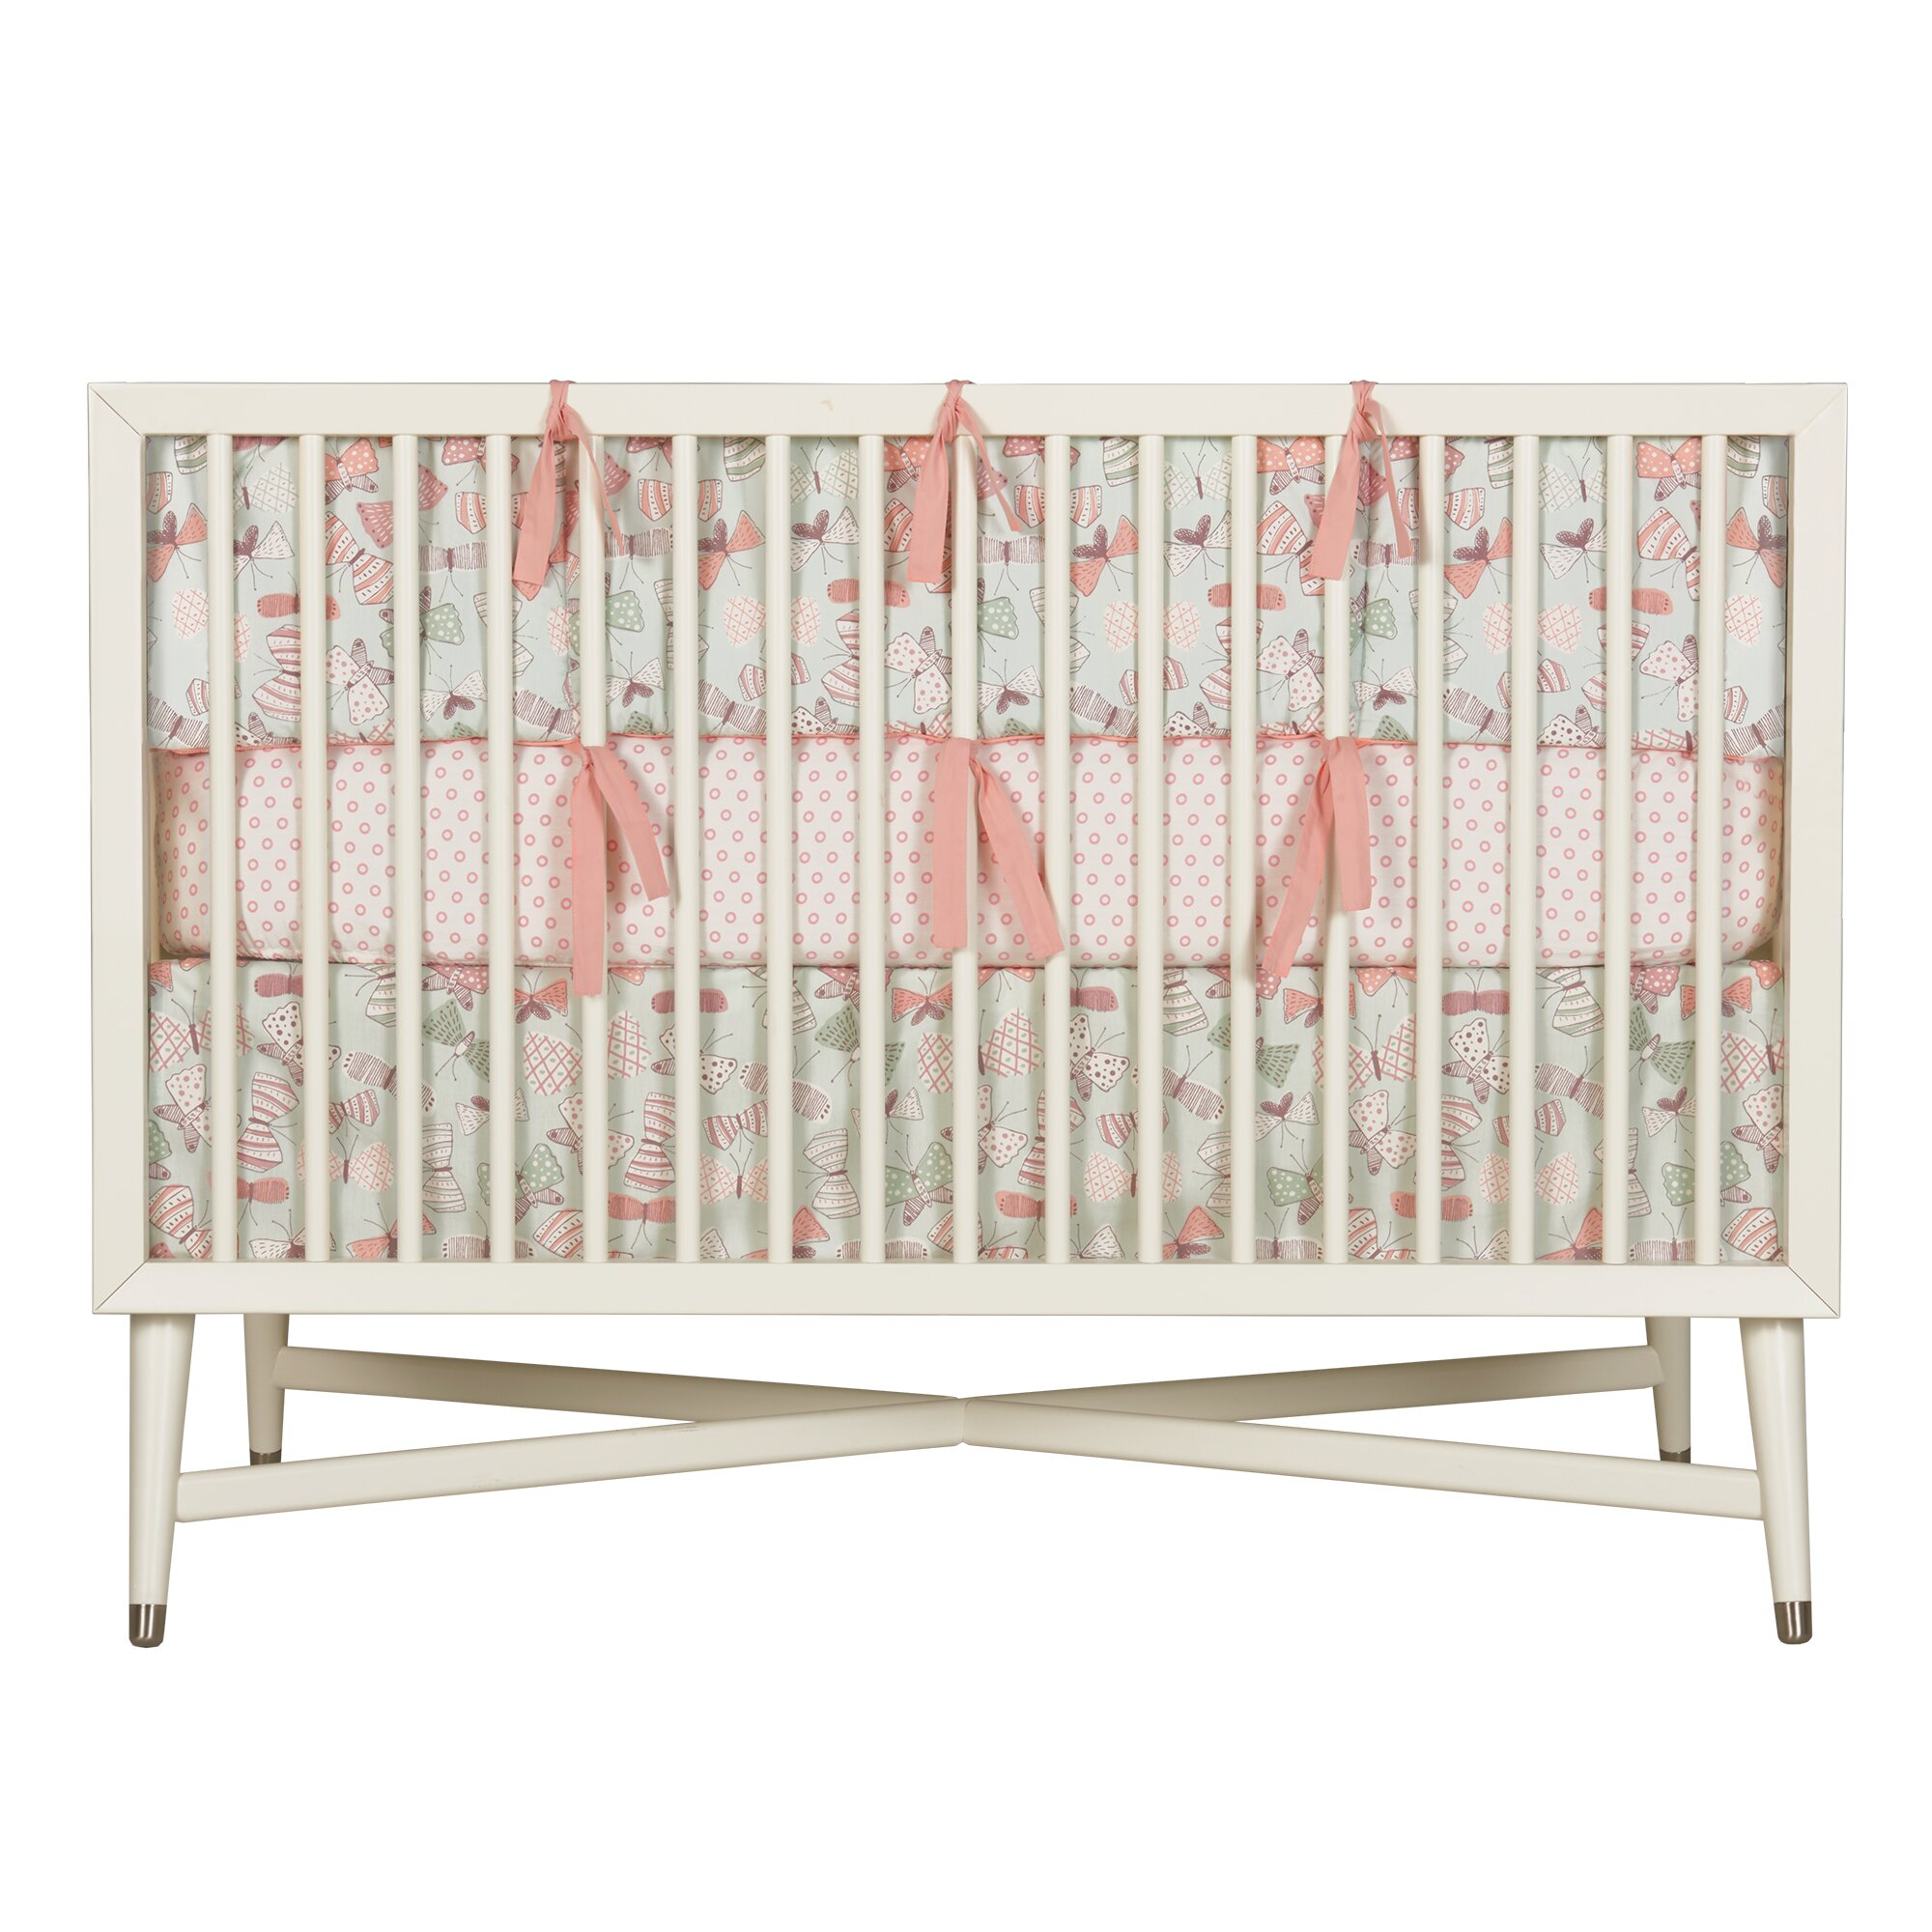 dwellstudio arden nursery bedding collection reviews wayfair